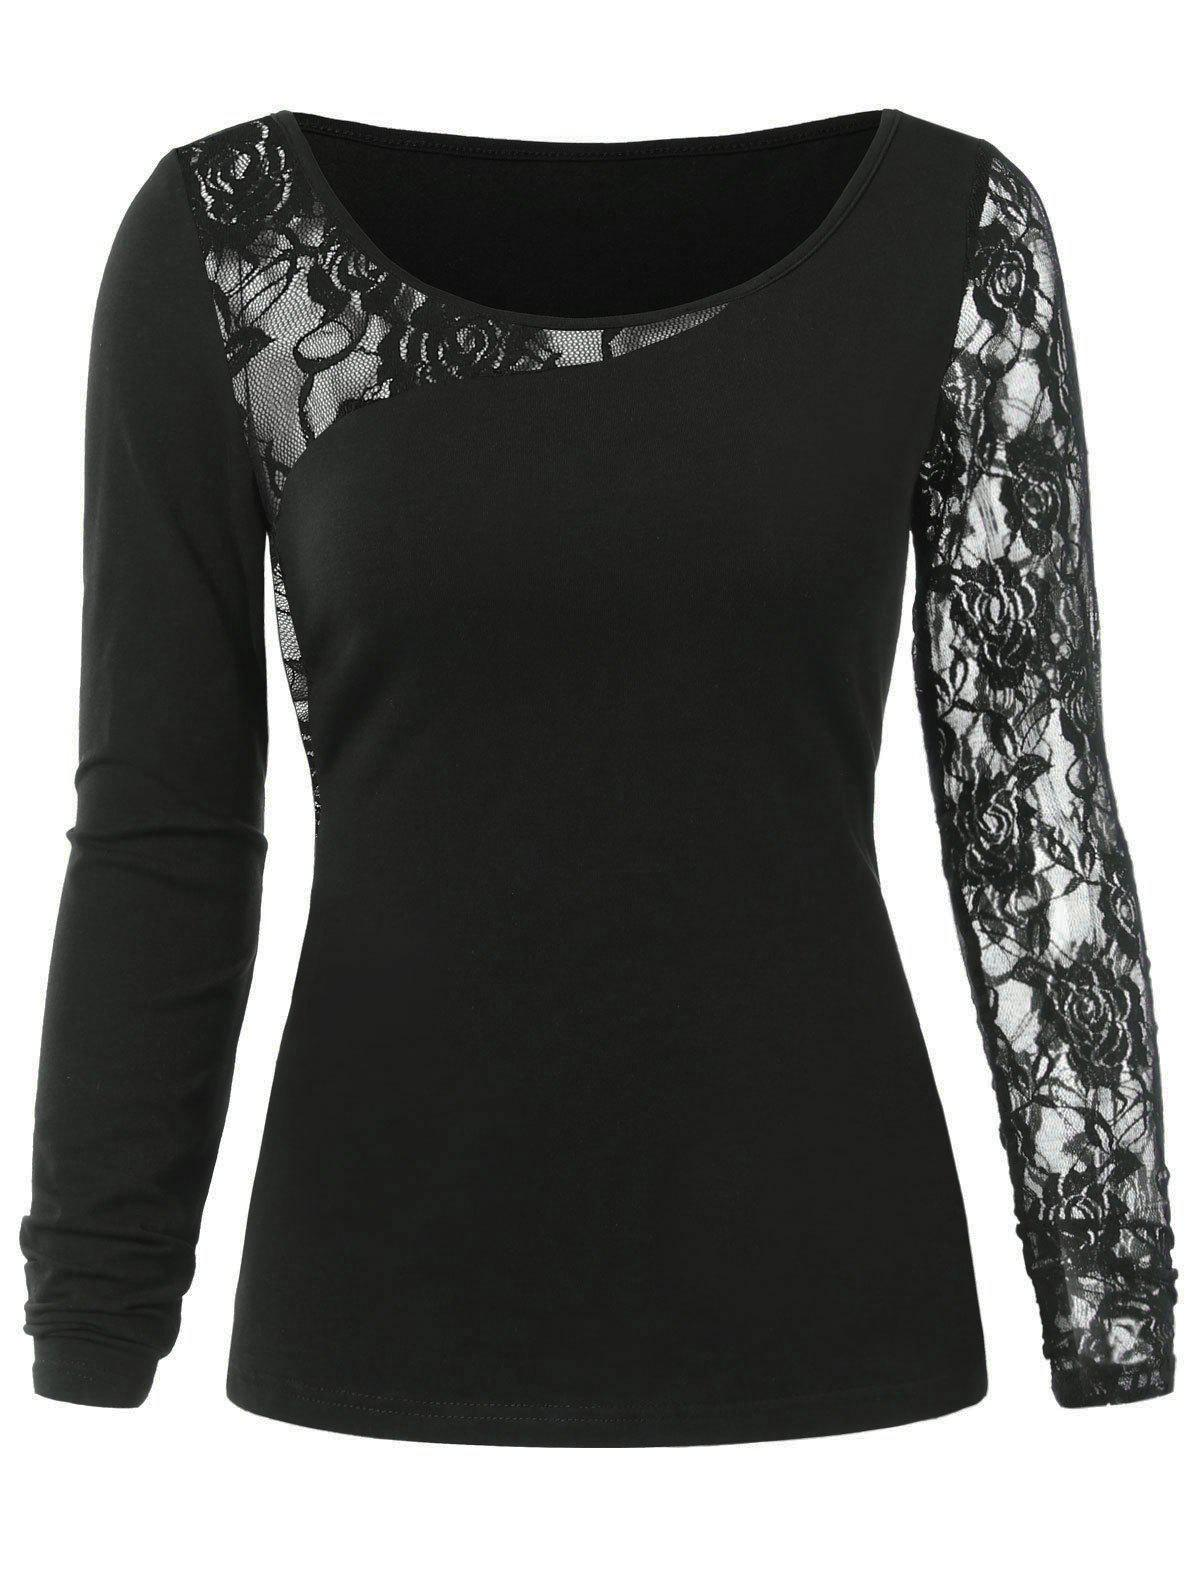 Hot Floral Lace Insert Tee